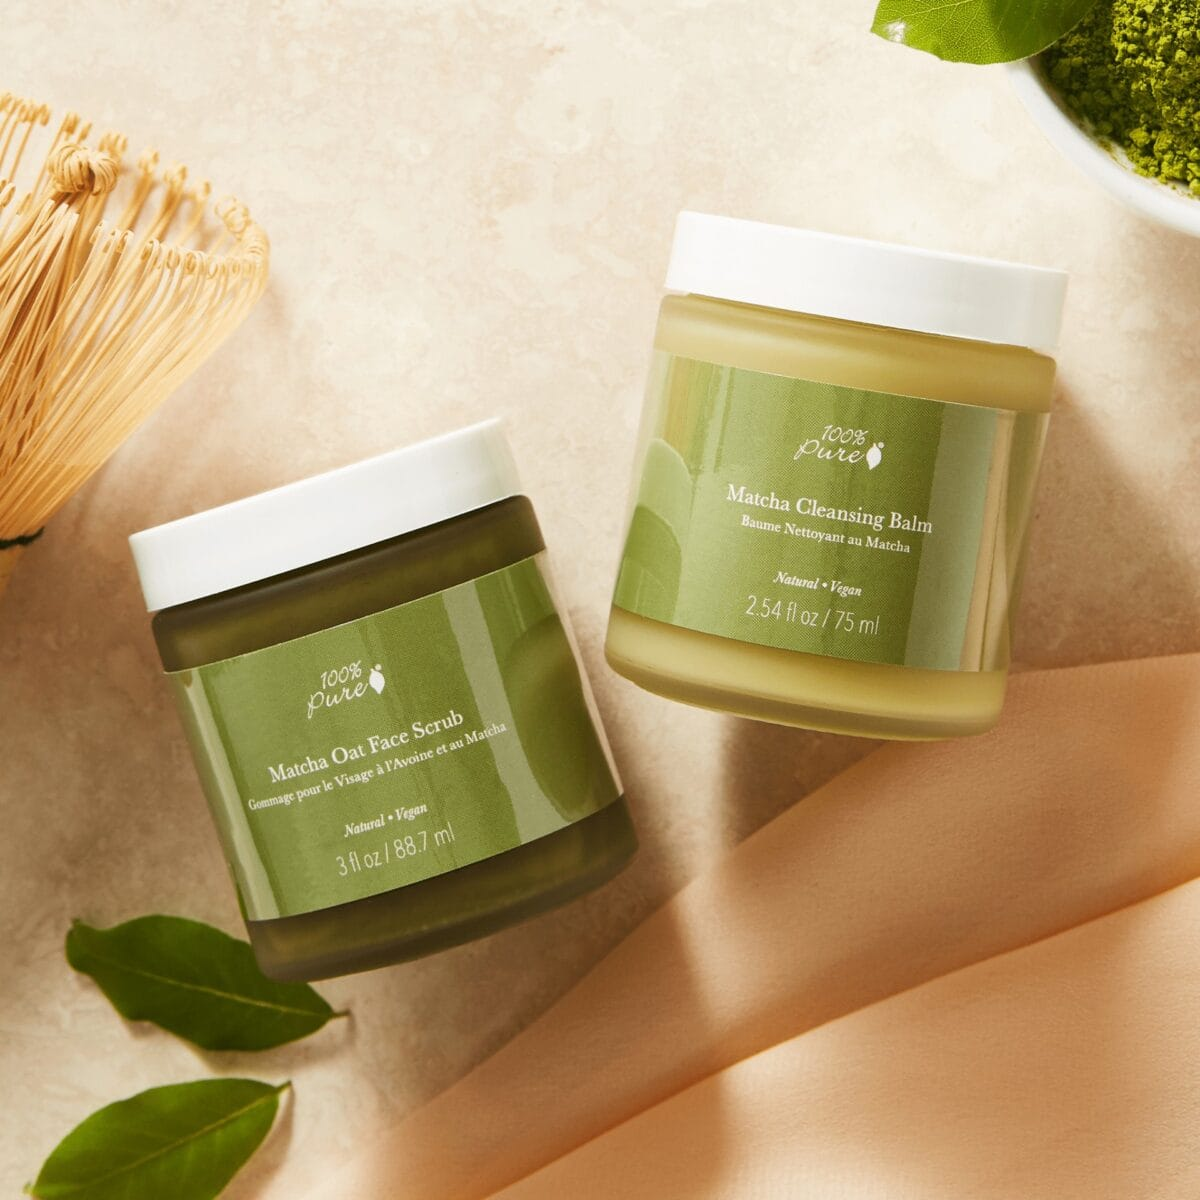 Matcha Cleansing Balm Calming Acne